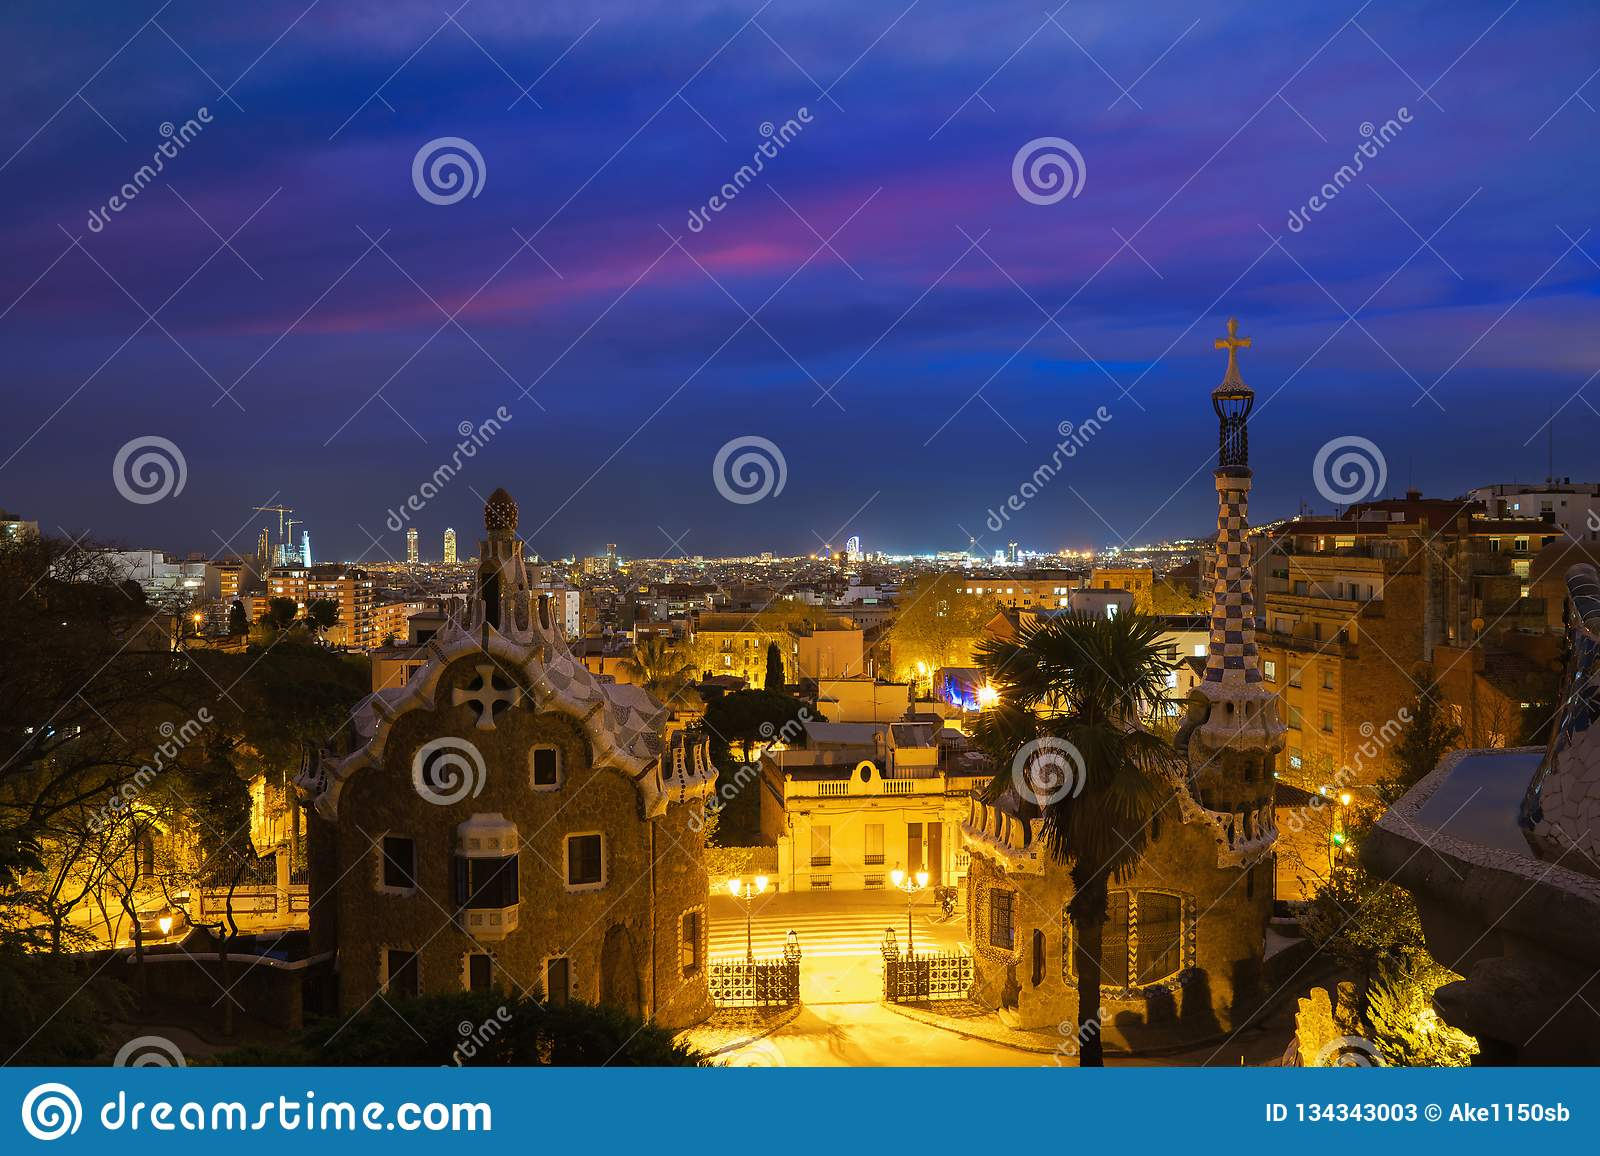 Park Guell in Barcelona, Spain at night. Barcelona skyline